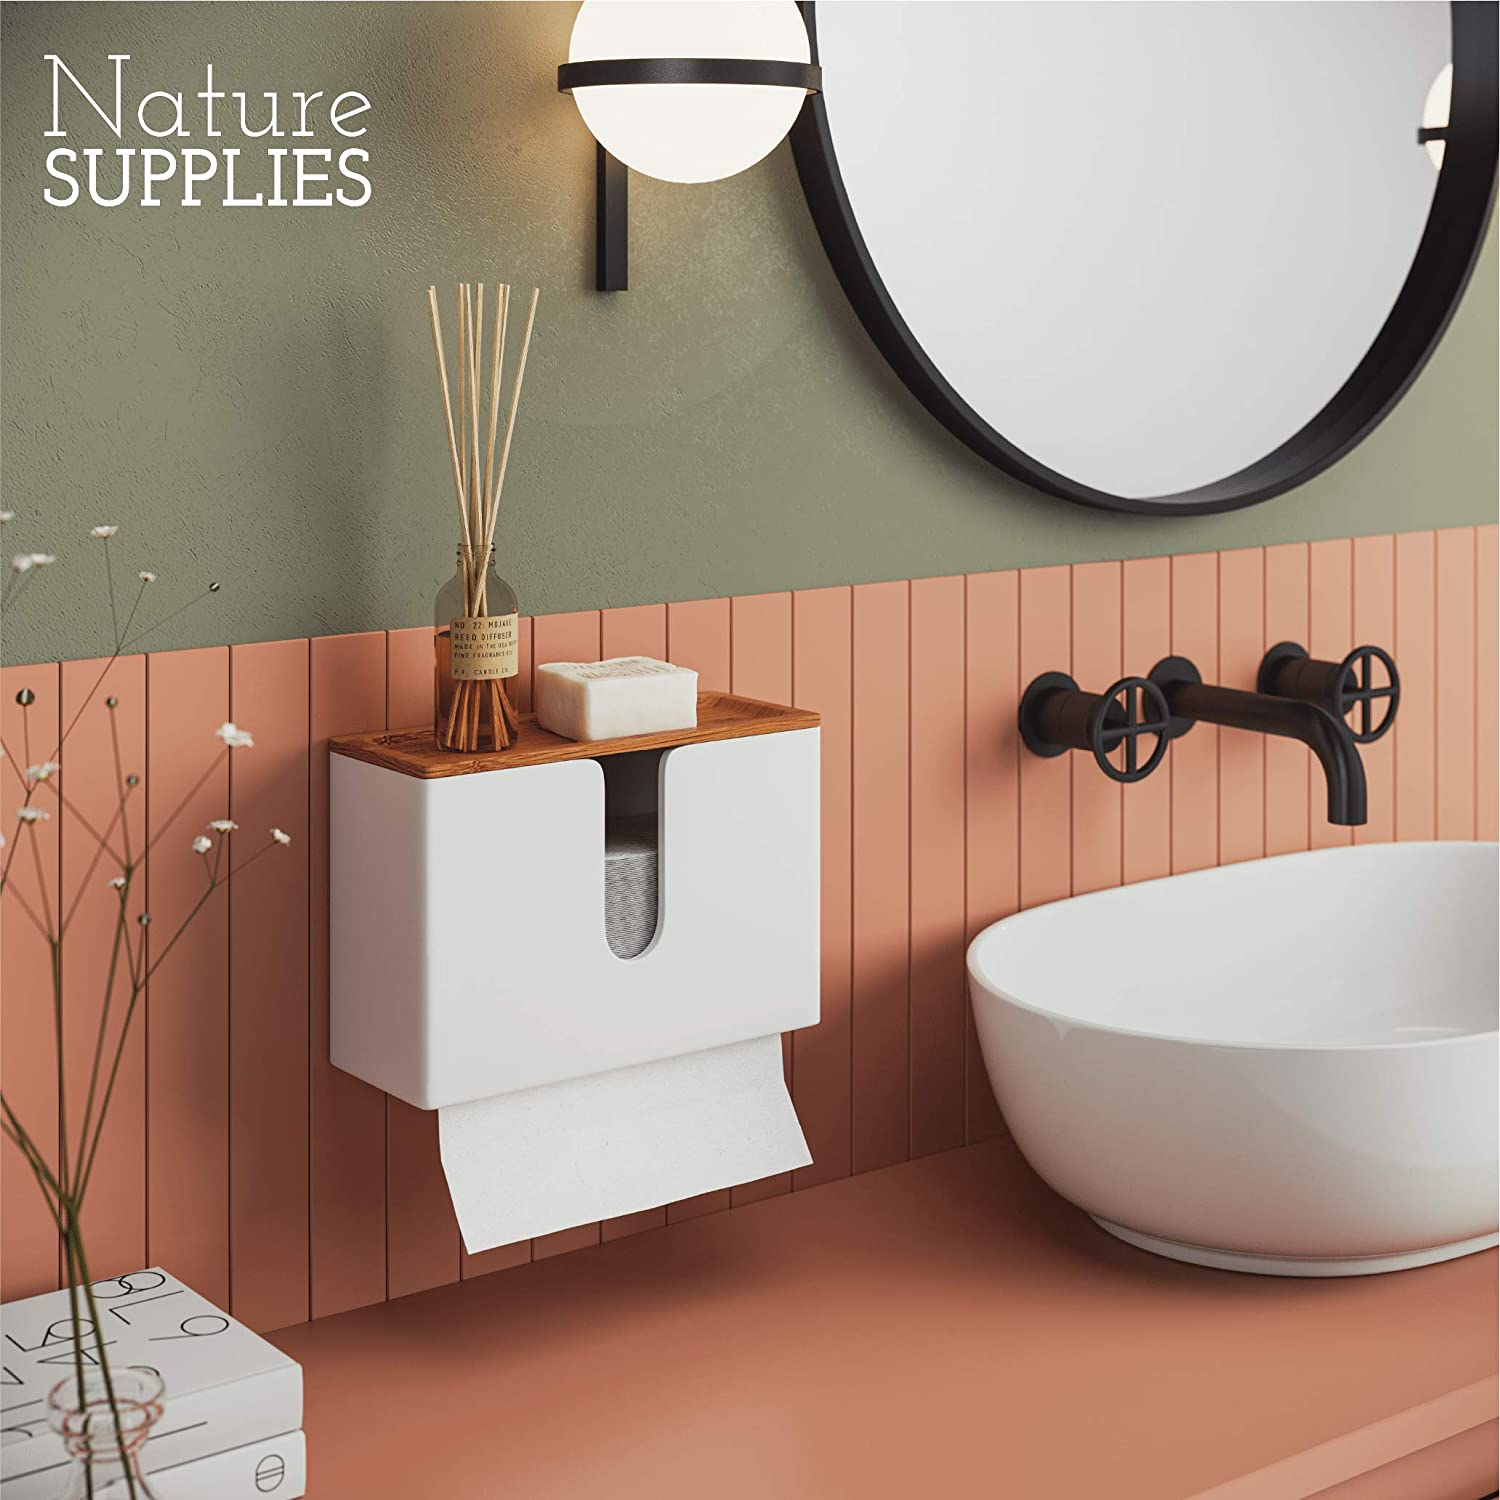 Nature Supplies Bamboo Paper Towel Dispenser with Removable Top Tray